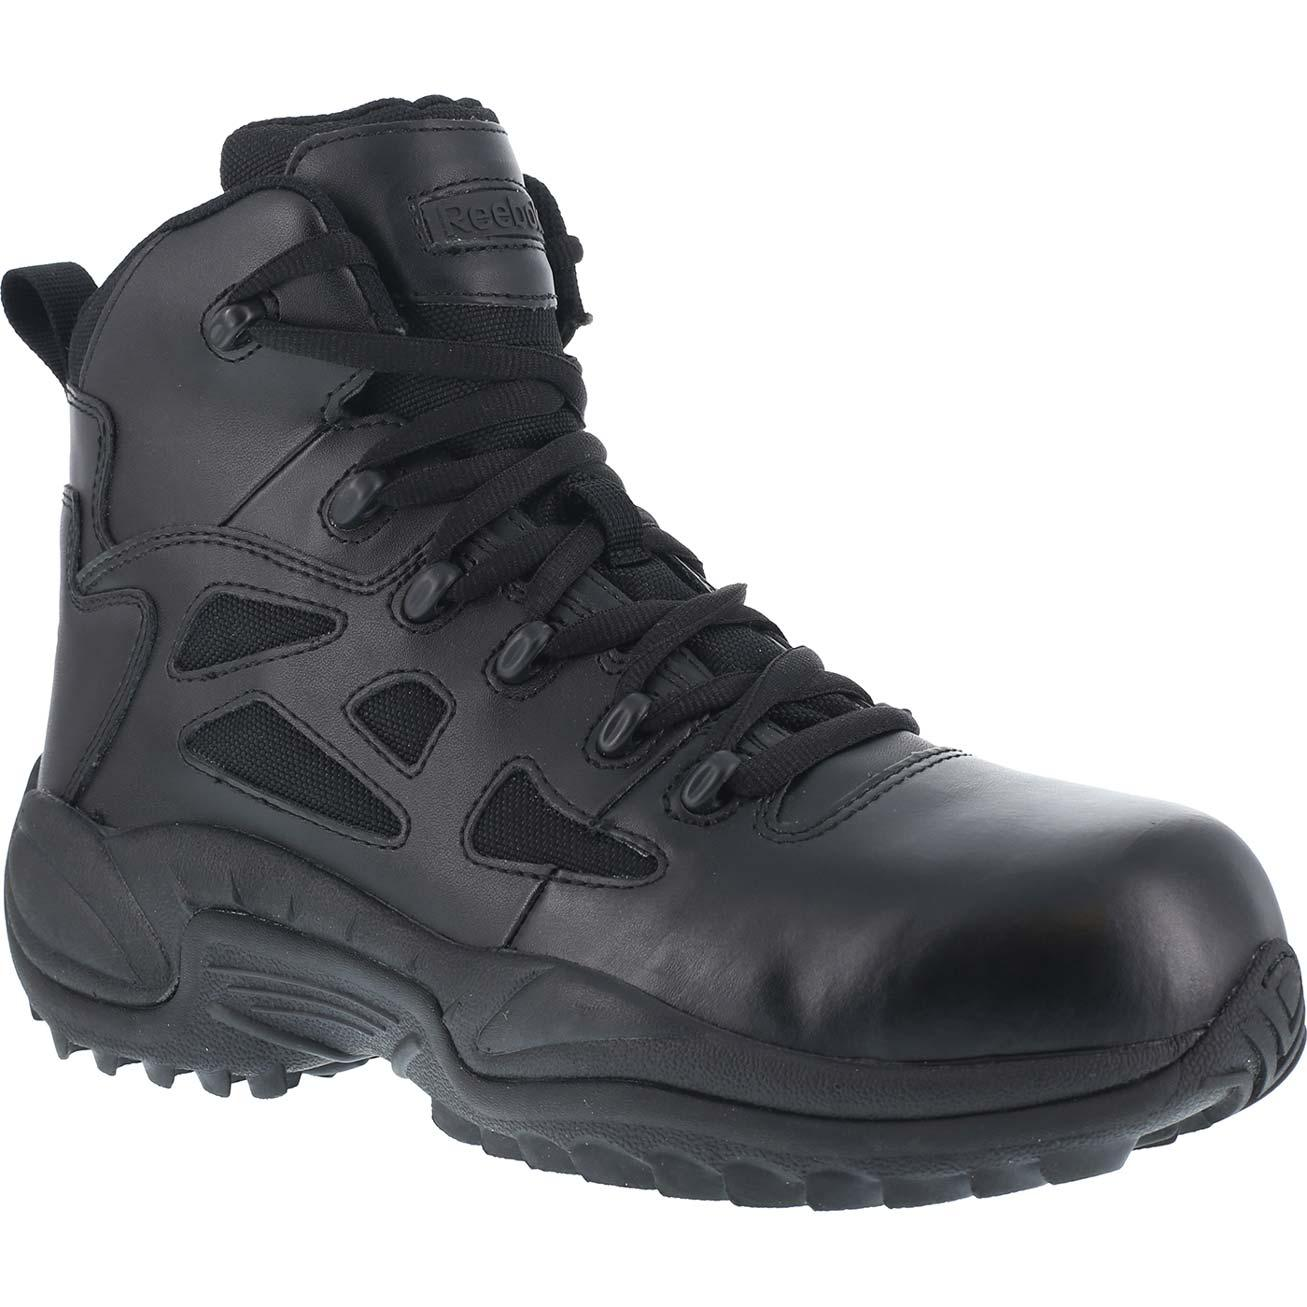 Black Reebok 6 Quot Women S Composite Toe Duty Boot W Side